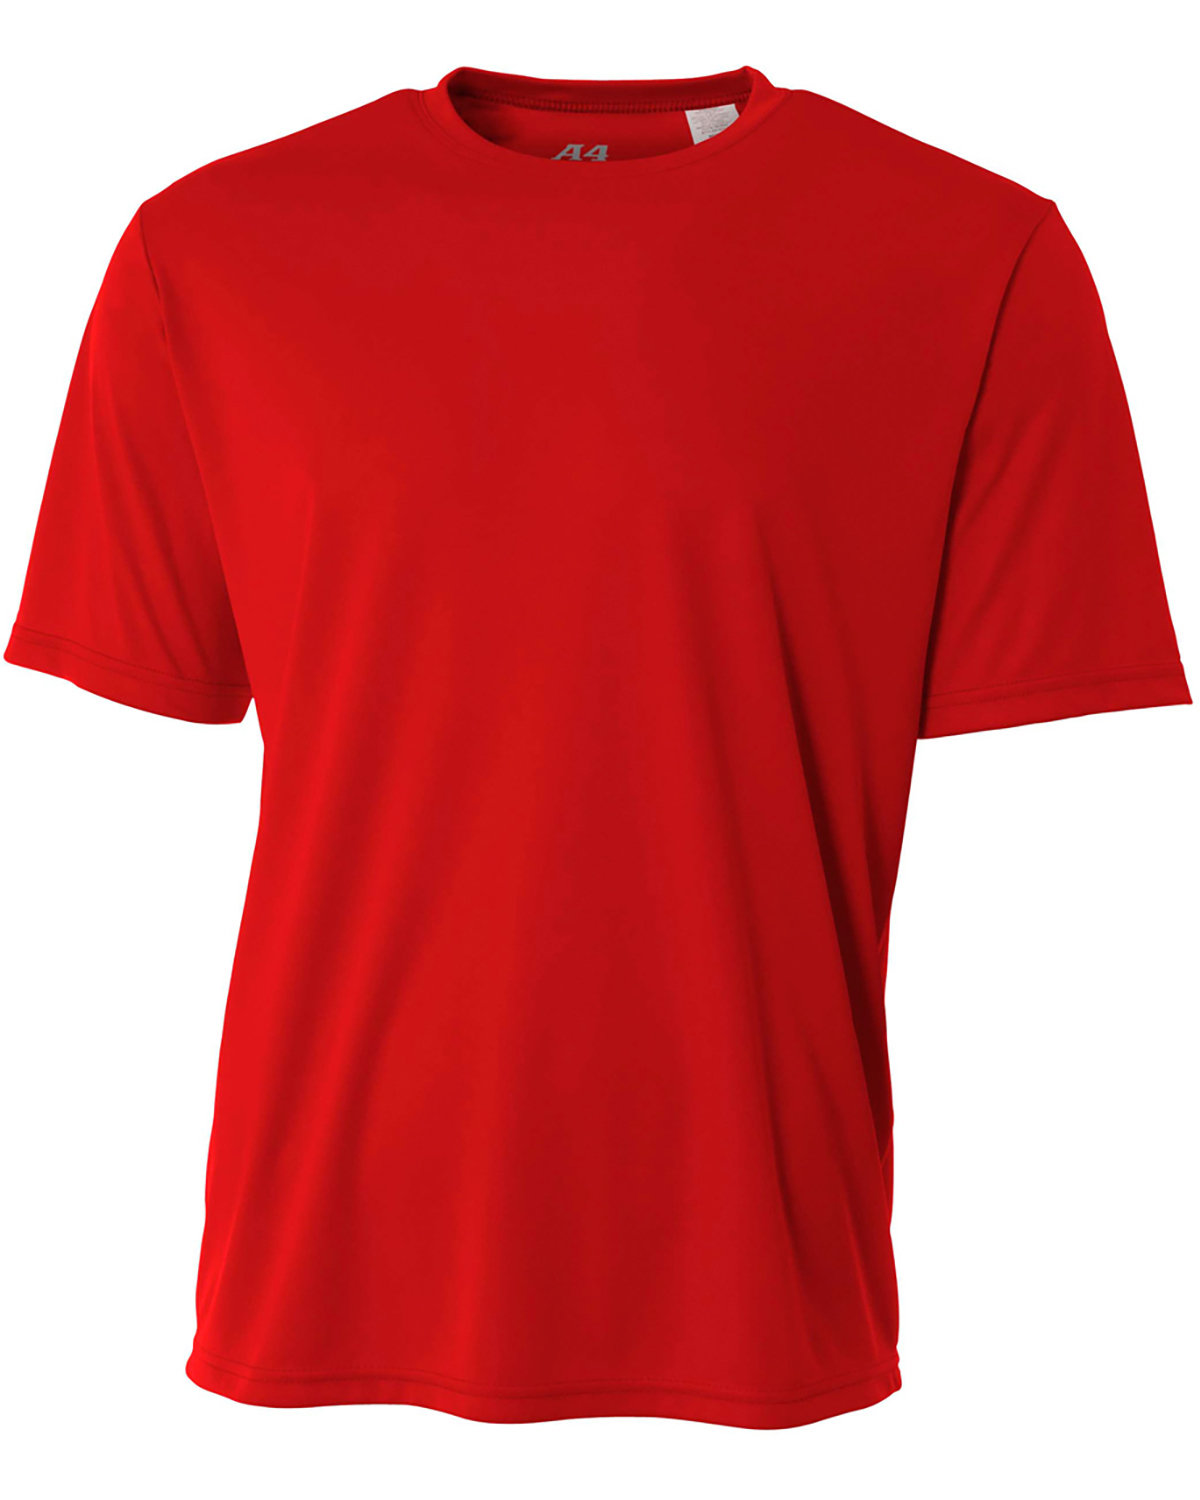 A4 Youth Cooling Performance T-Shirt SCARLET